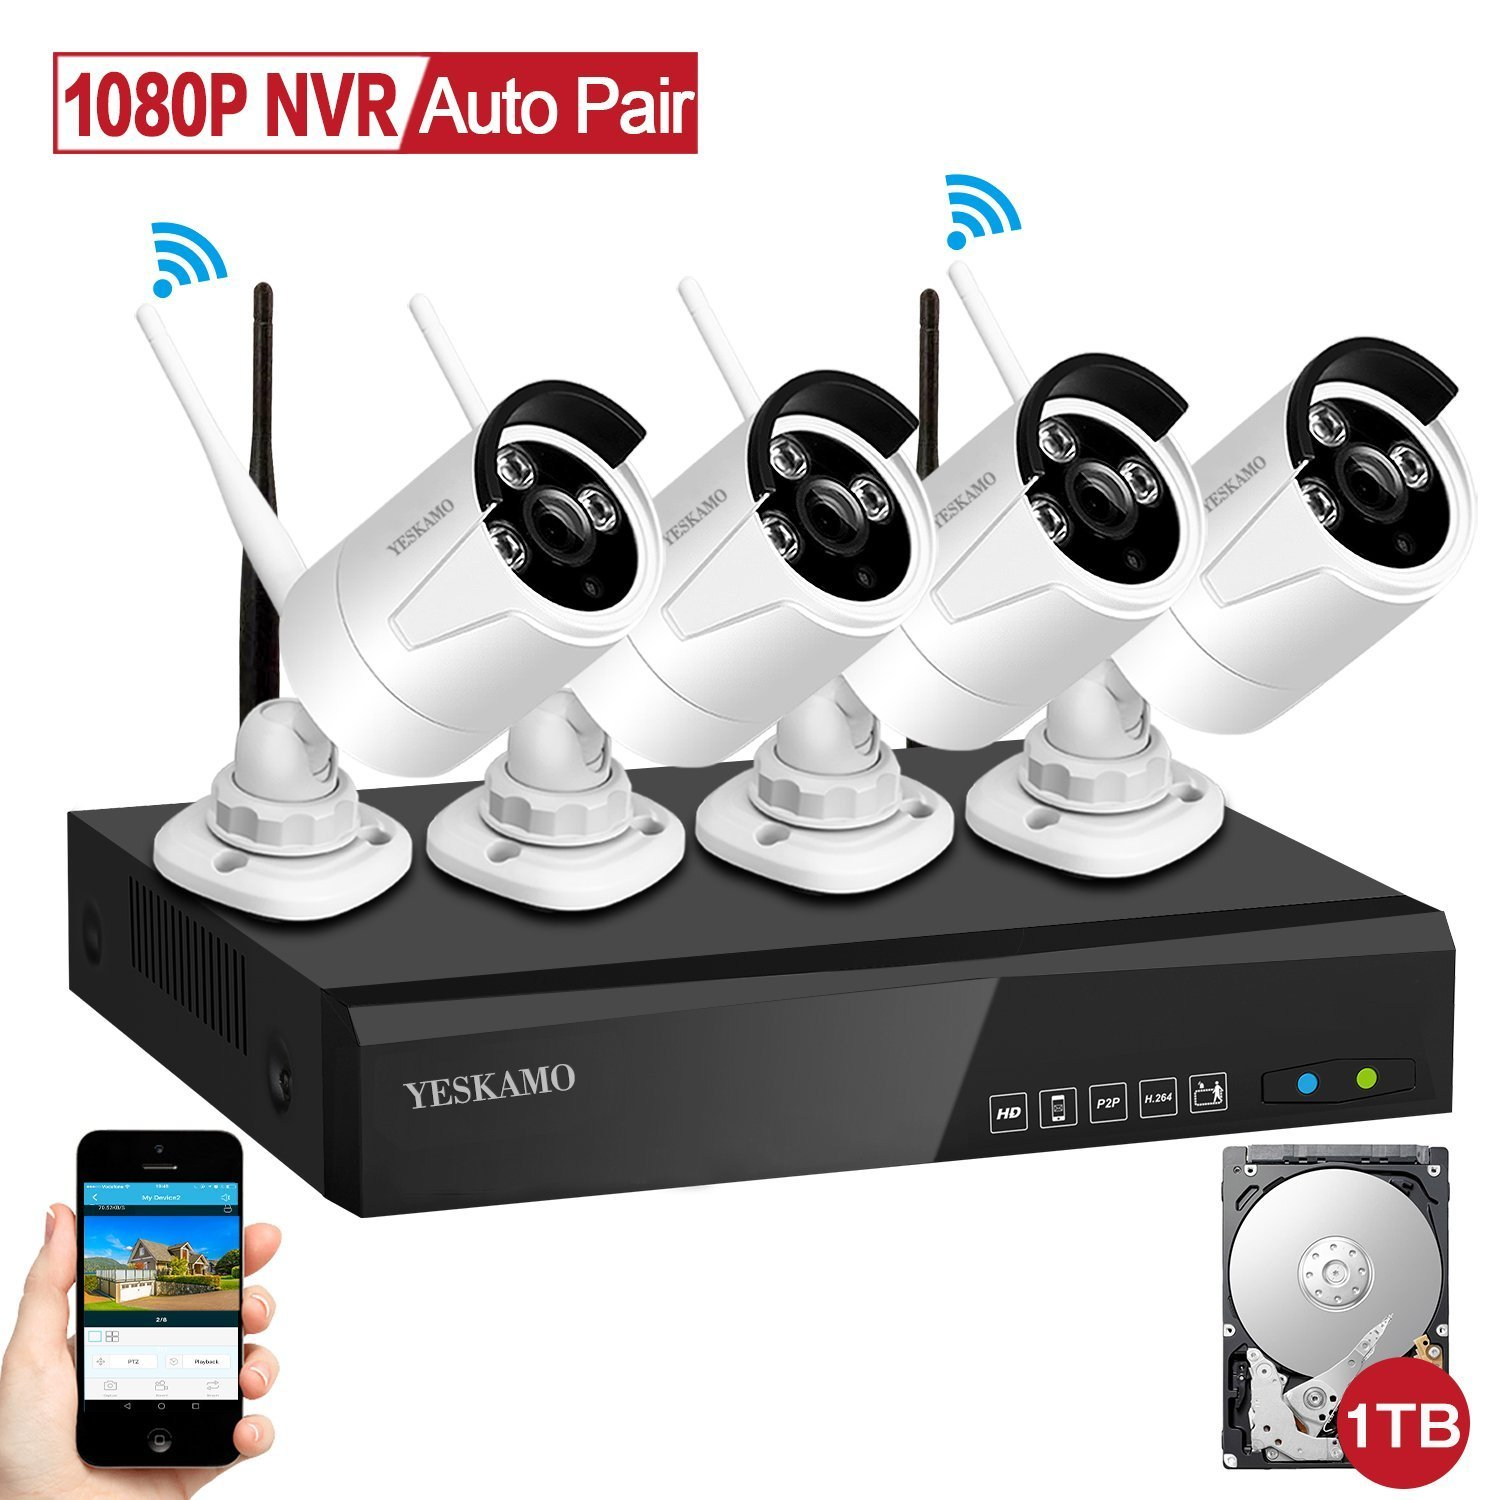 Wireless Security Camera System, YESKAM Home Camera Security System 1080P 4 Channel HD Network Video Recorder and 4pcs 1.3MP WiFi IP Cameras with 1TB HDD for Outdoor CCTV Video Surveillance System